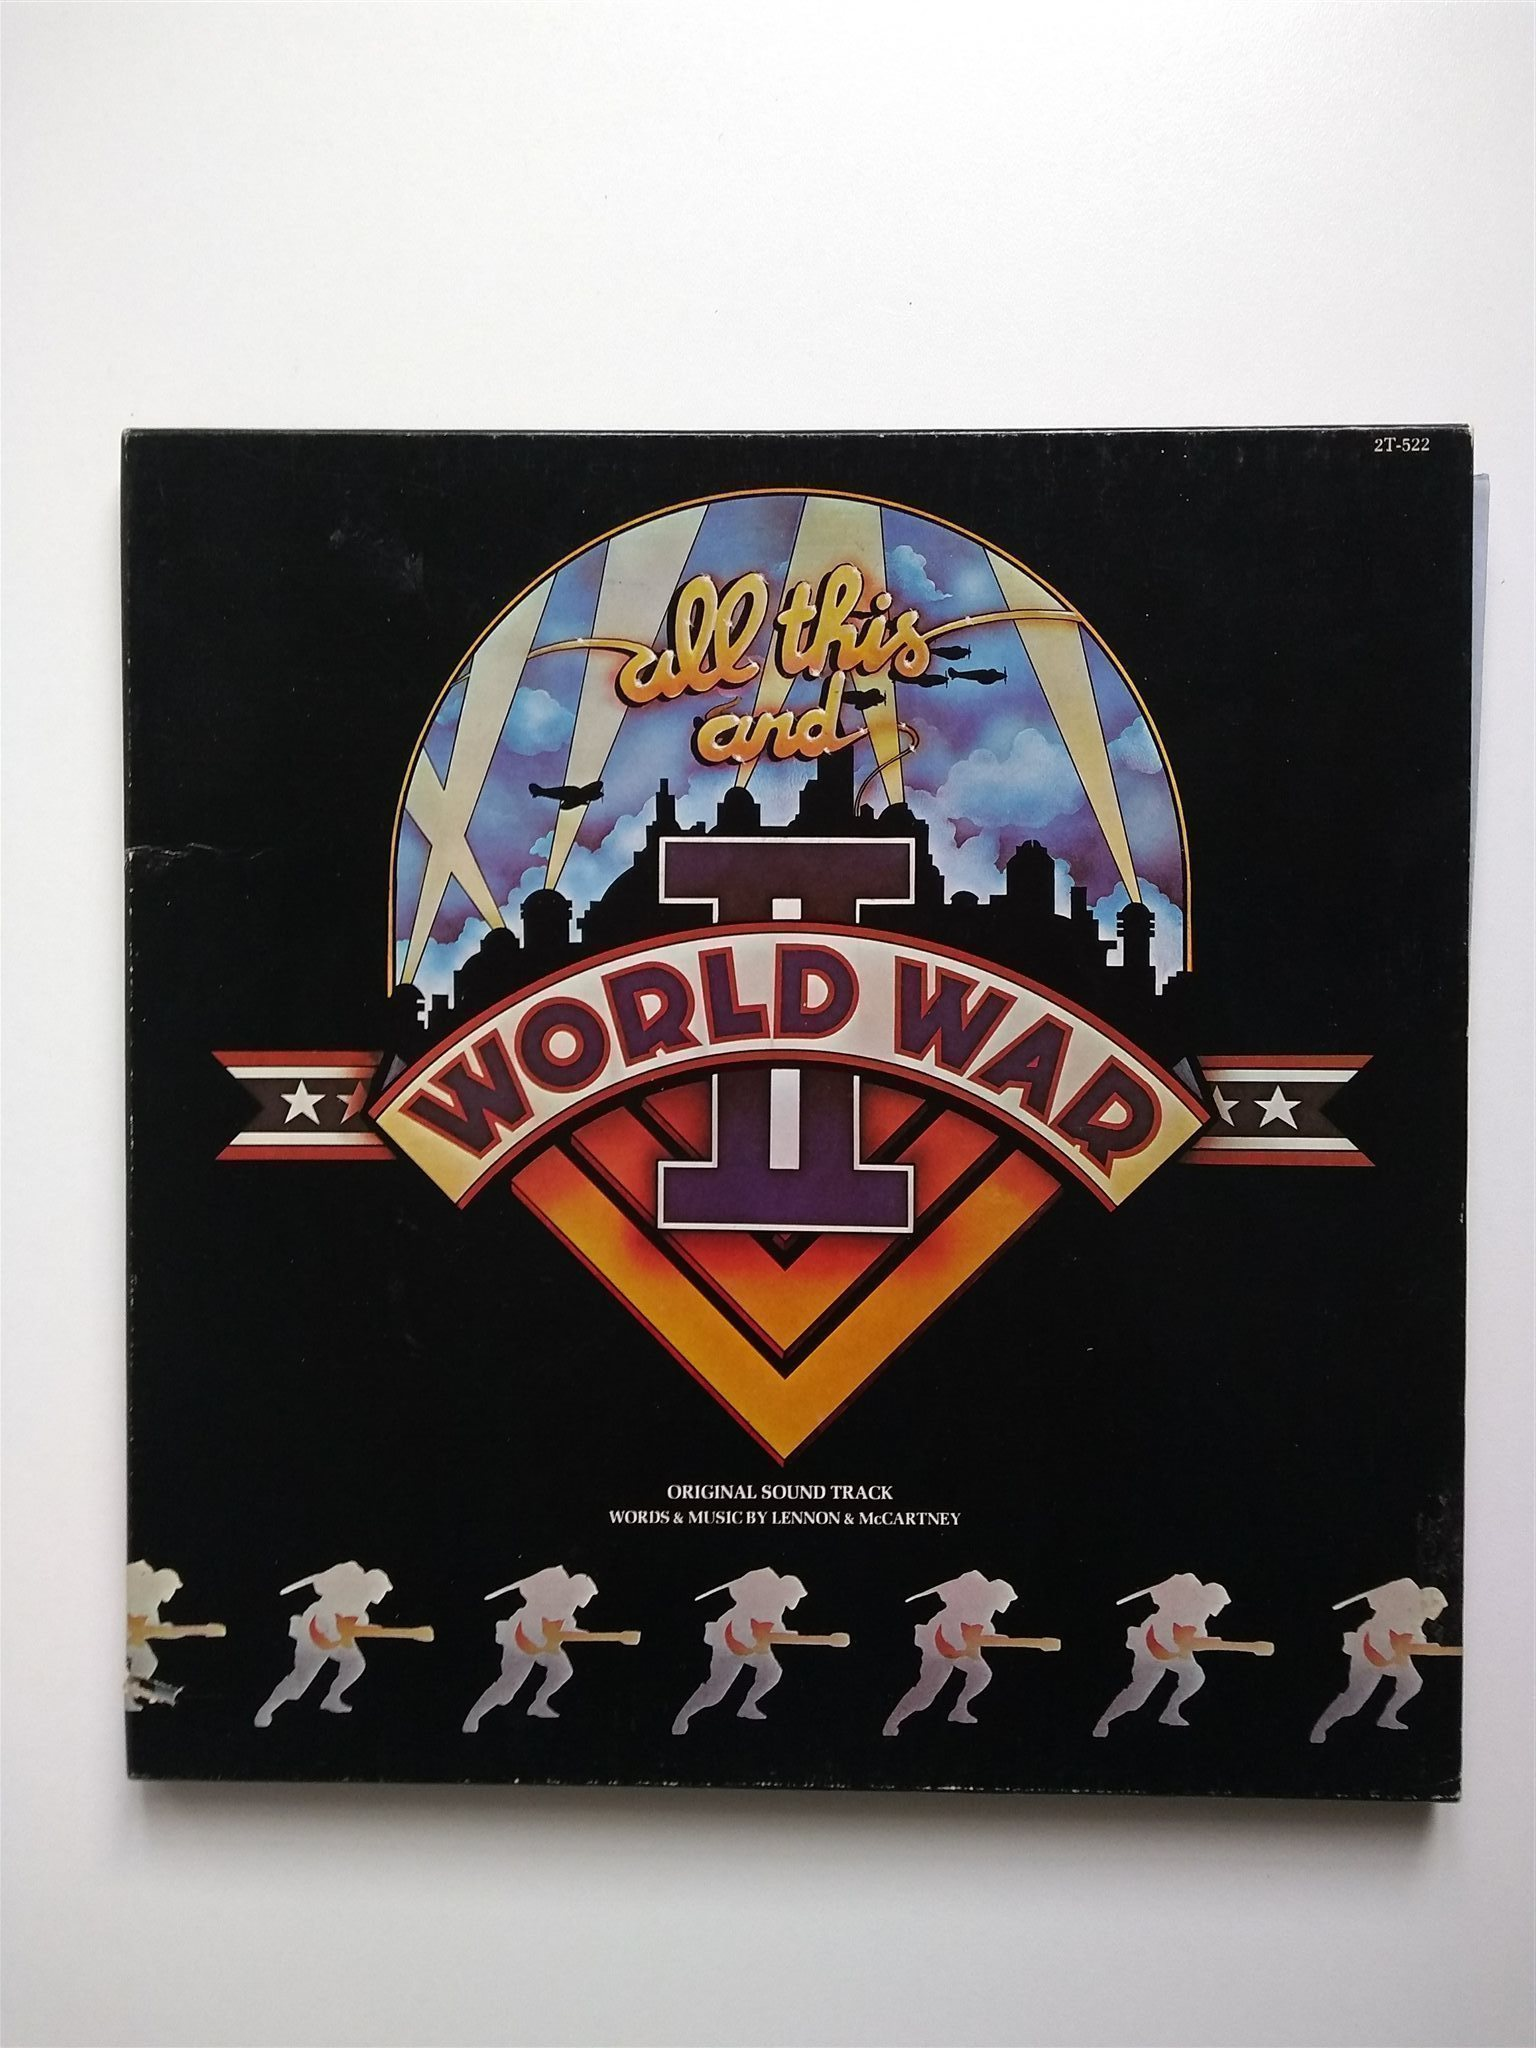 Vinyl LP box, All this and World War II